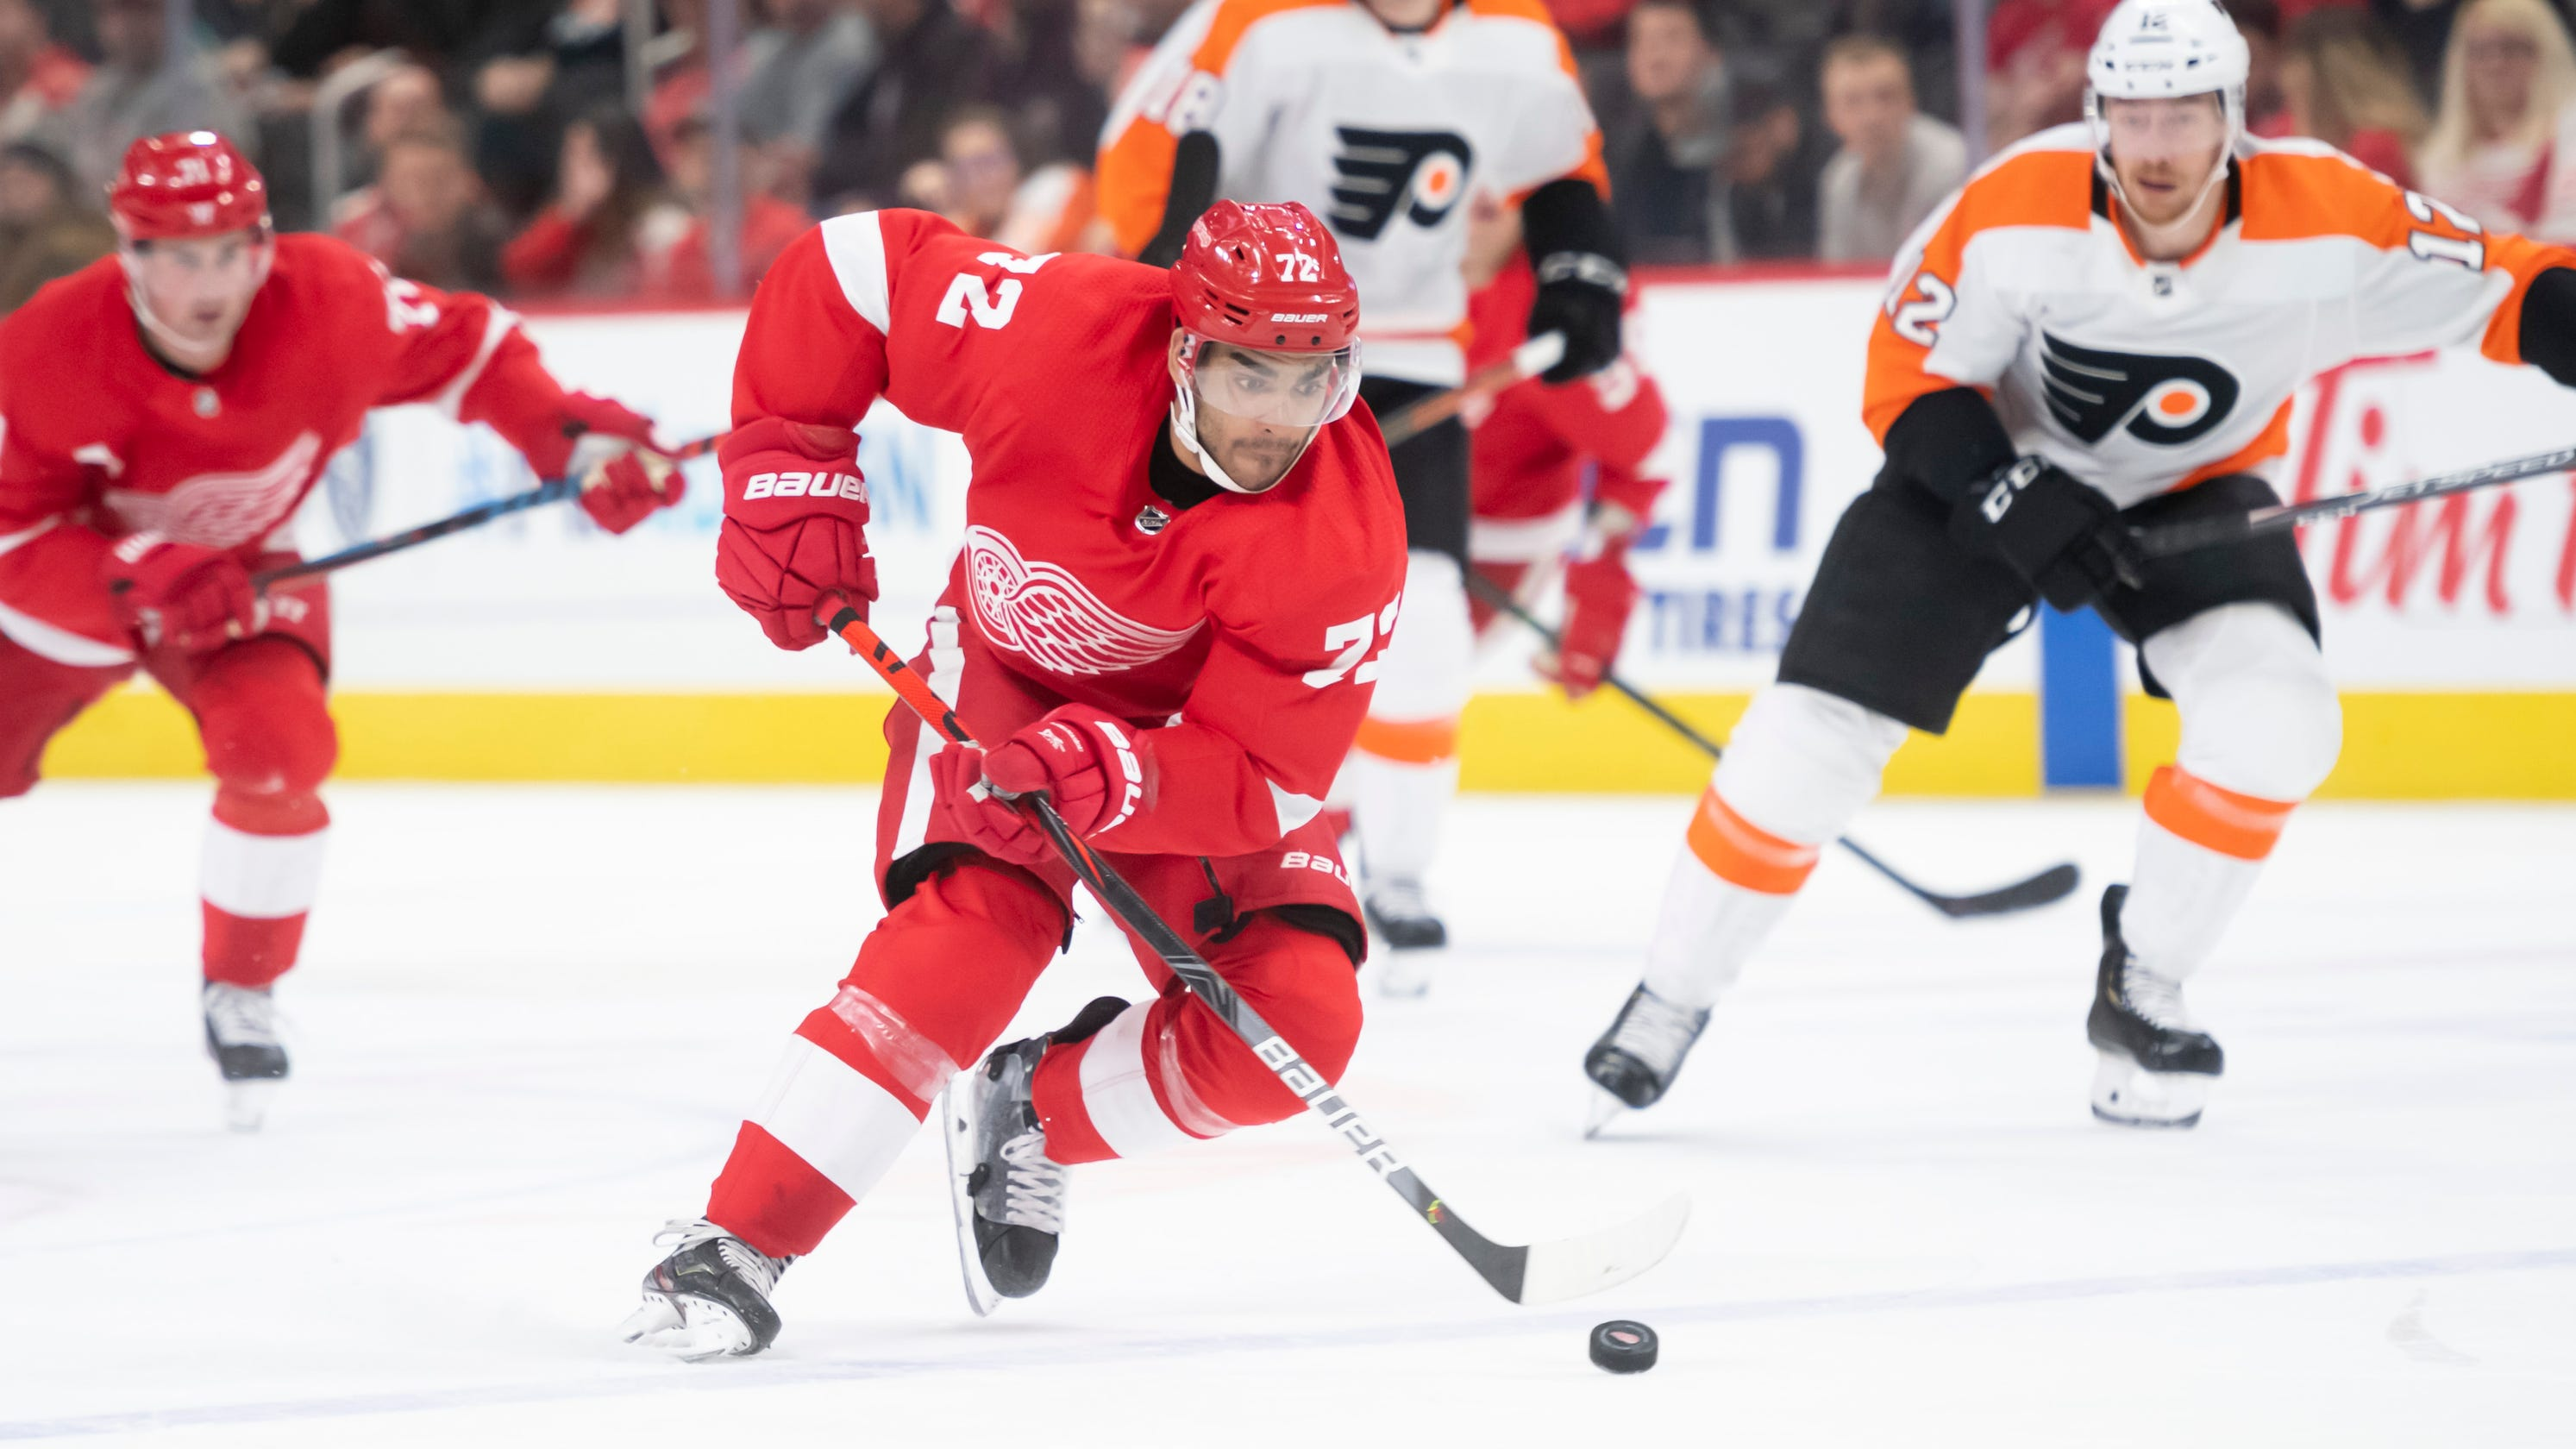 Report: Red Wings close to trading Andreas Athanasiou to Blue Jackets